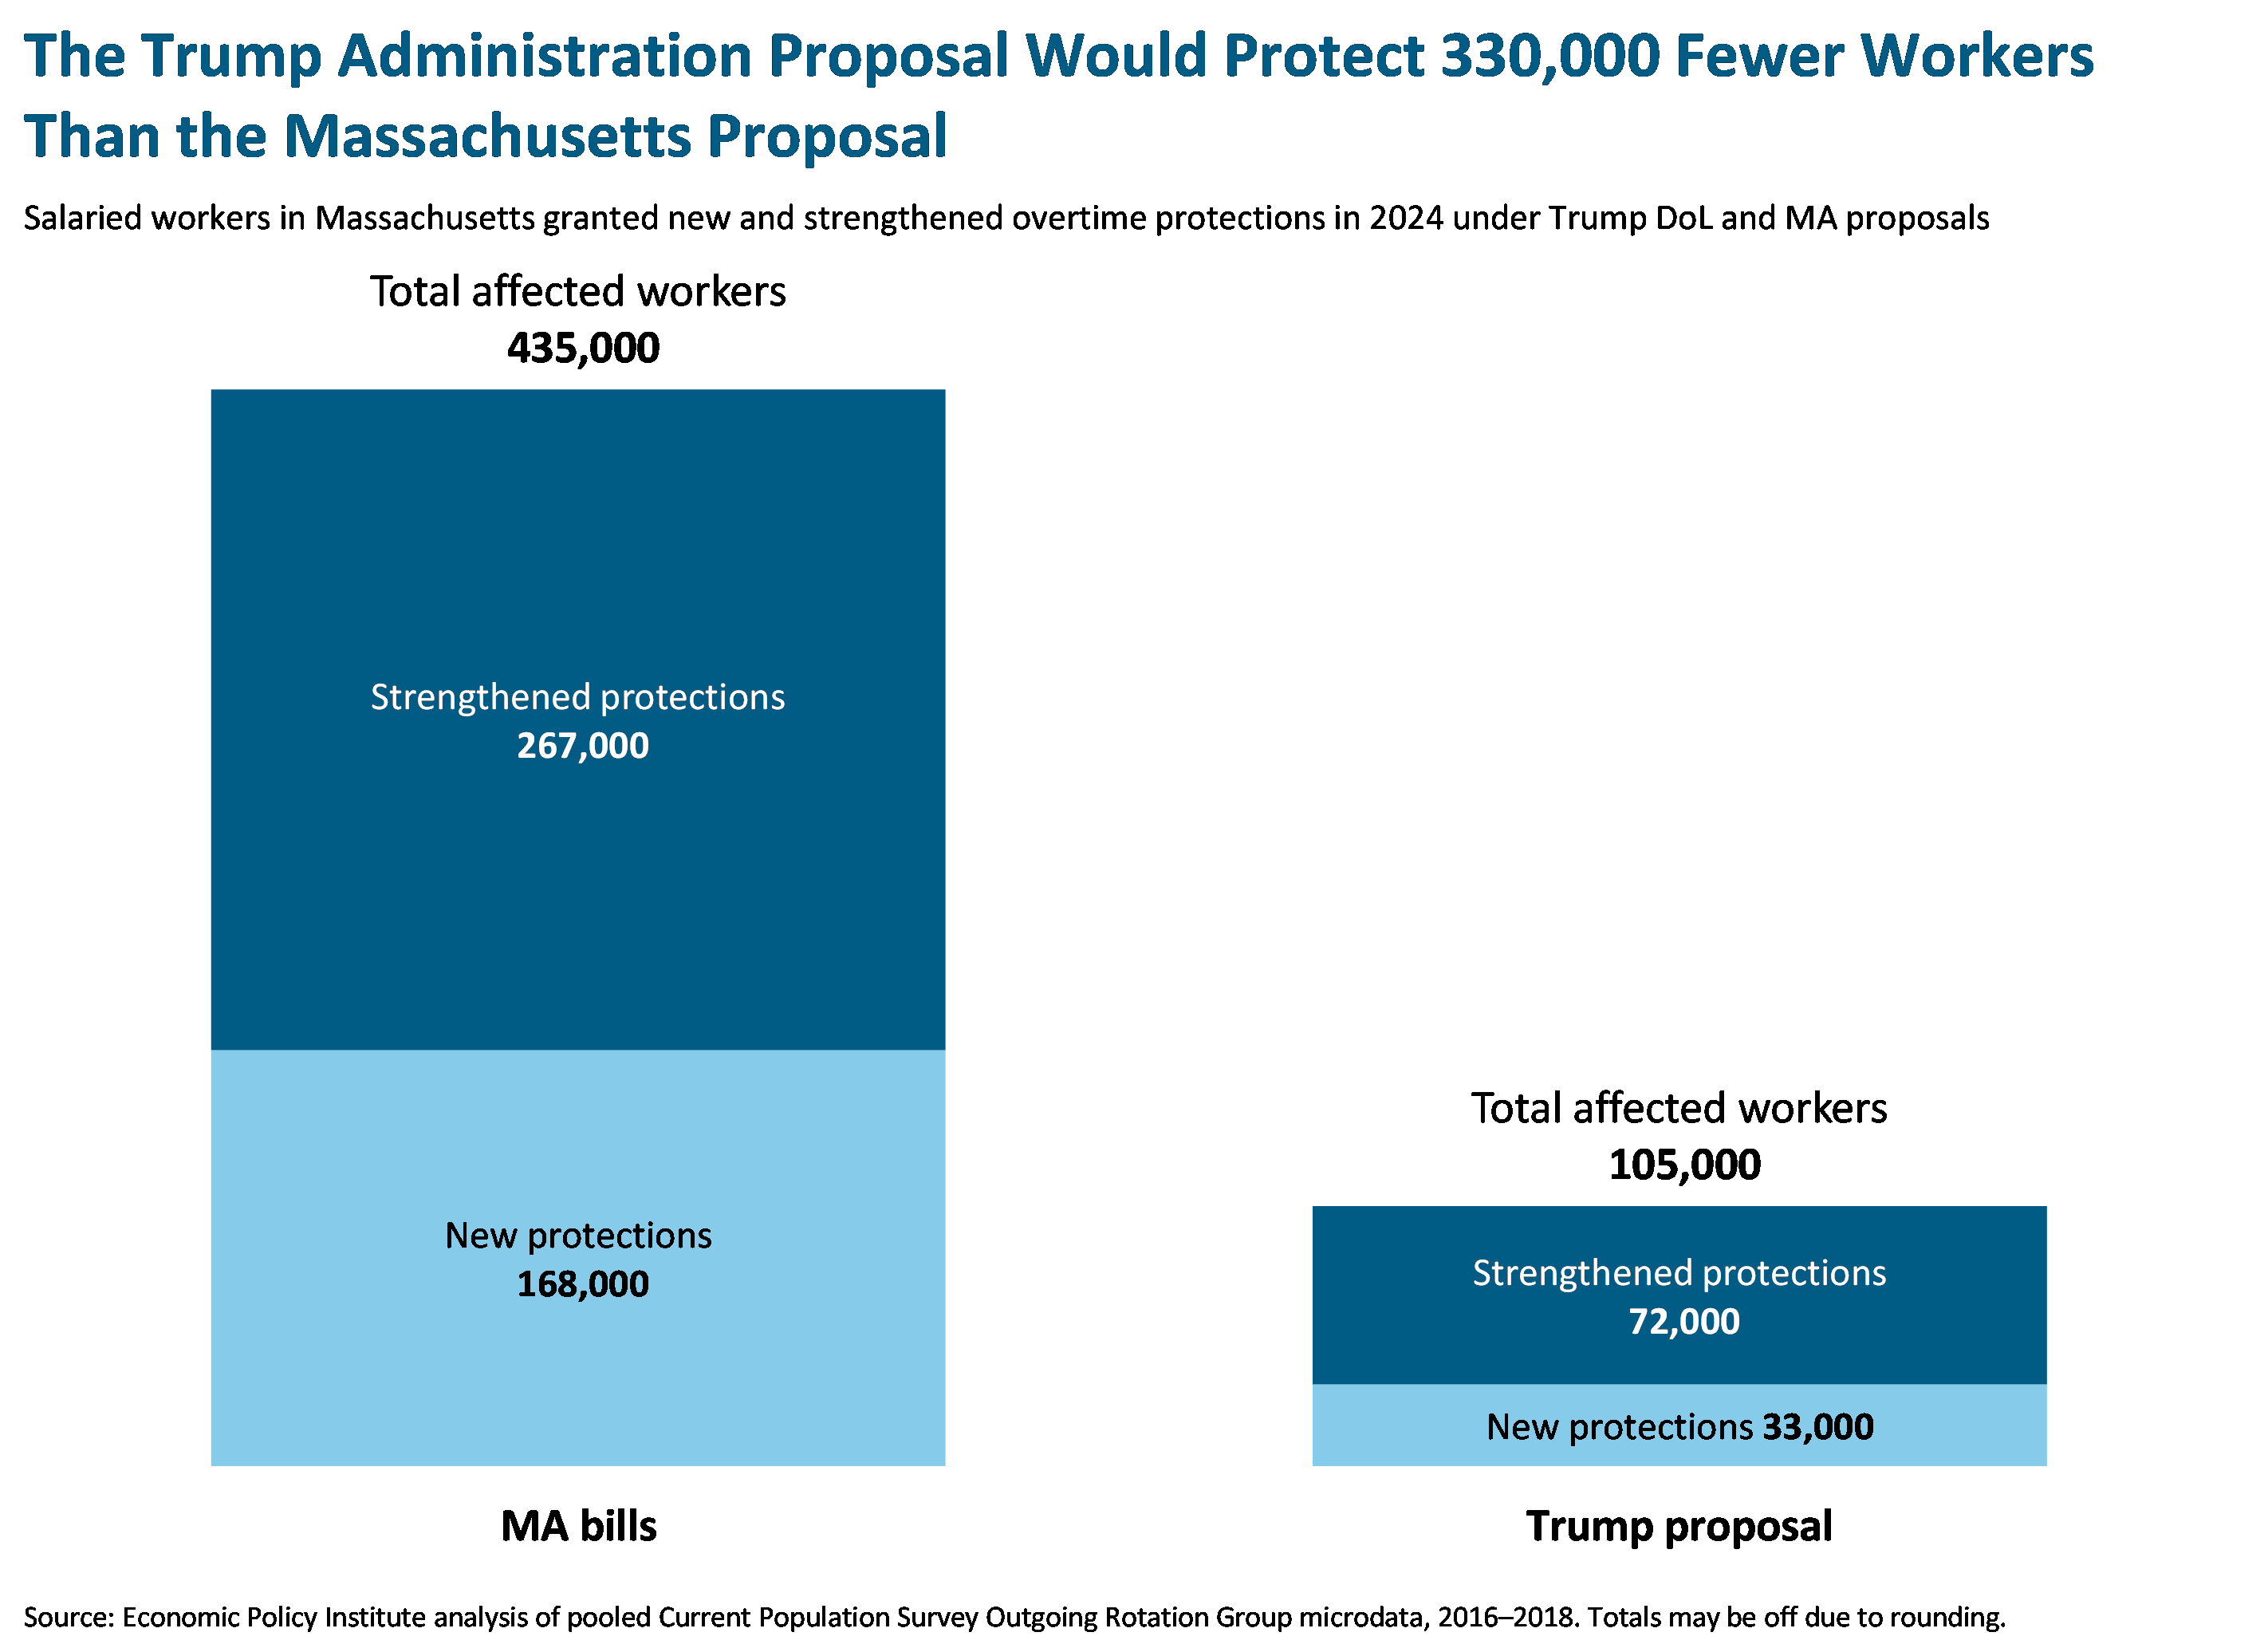 The Trump Administration Proposal Would Protect 330,000 Fewer Workers Than the Massachusetts Proposal